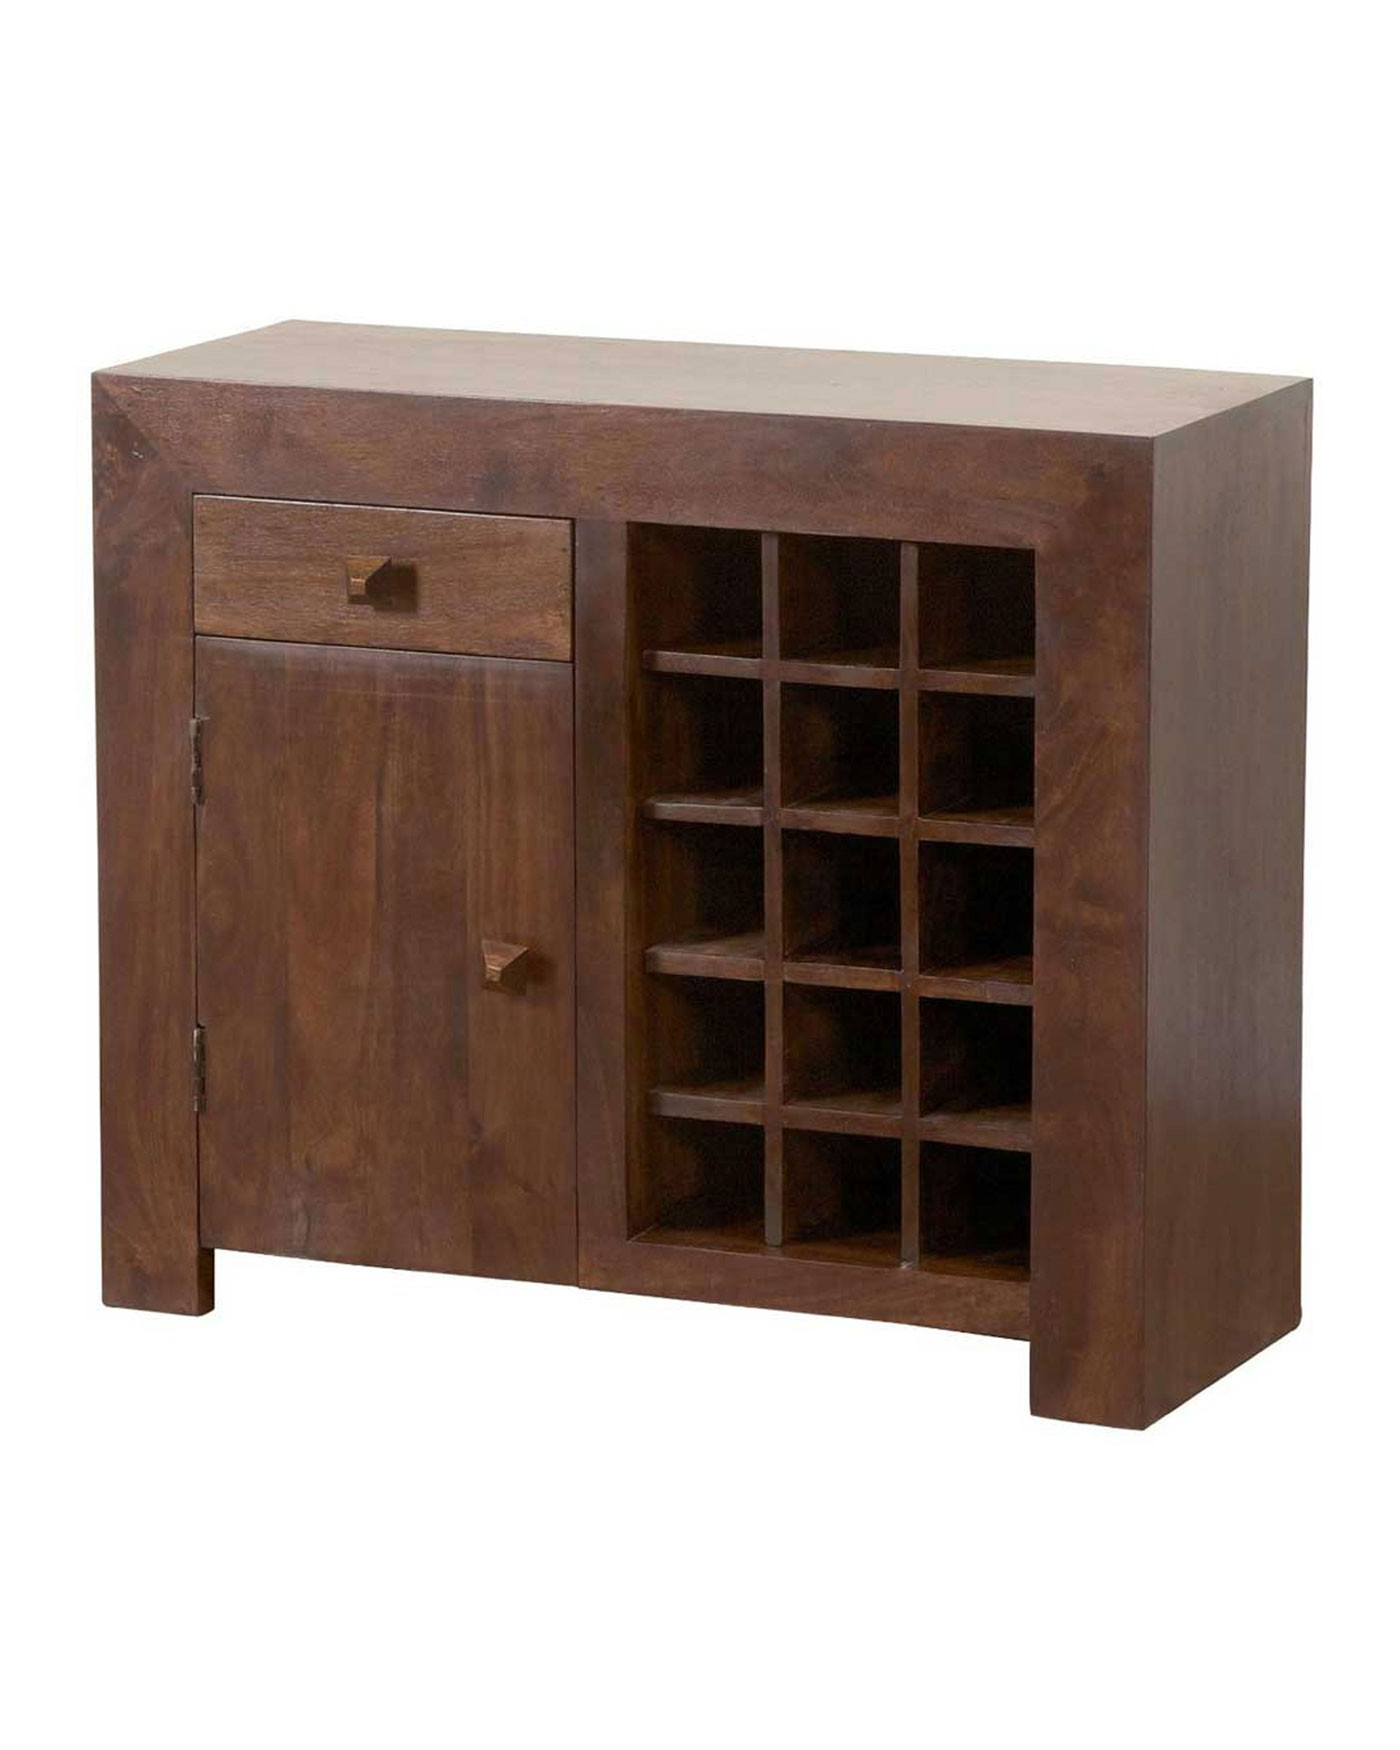 Best And Newest Dakota Sideboard With Wine Rack Dark Shade – Homescapes With Bale Rustic Grey Sideboards (Gallery 1 of 20)